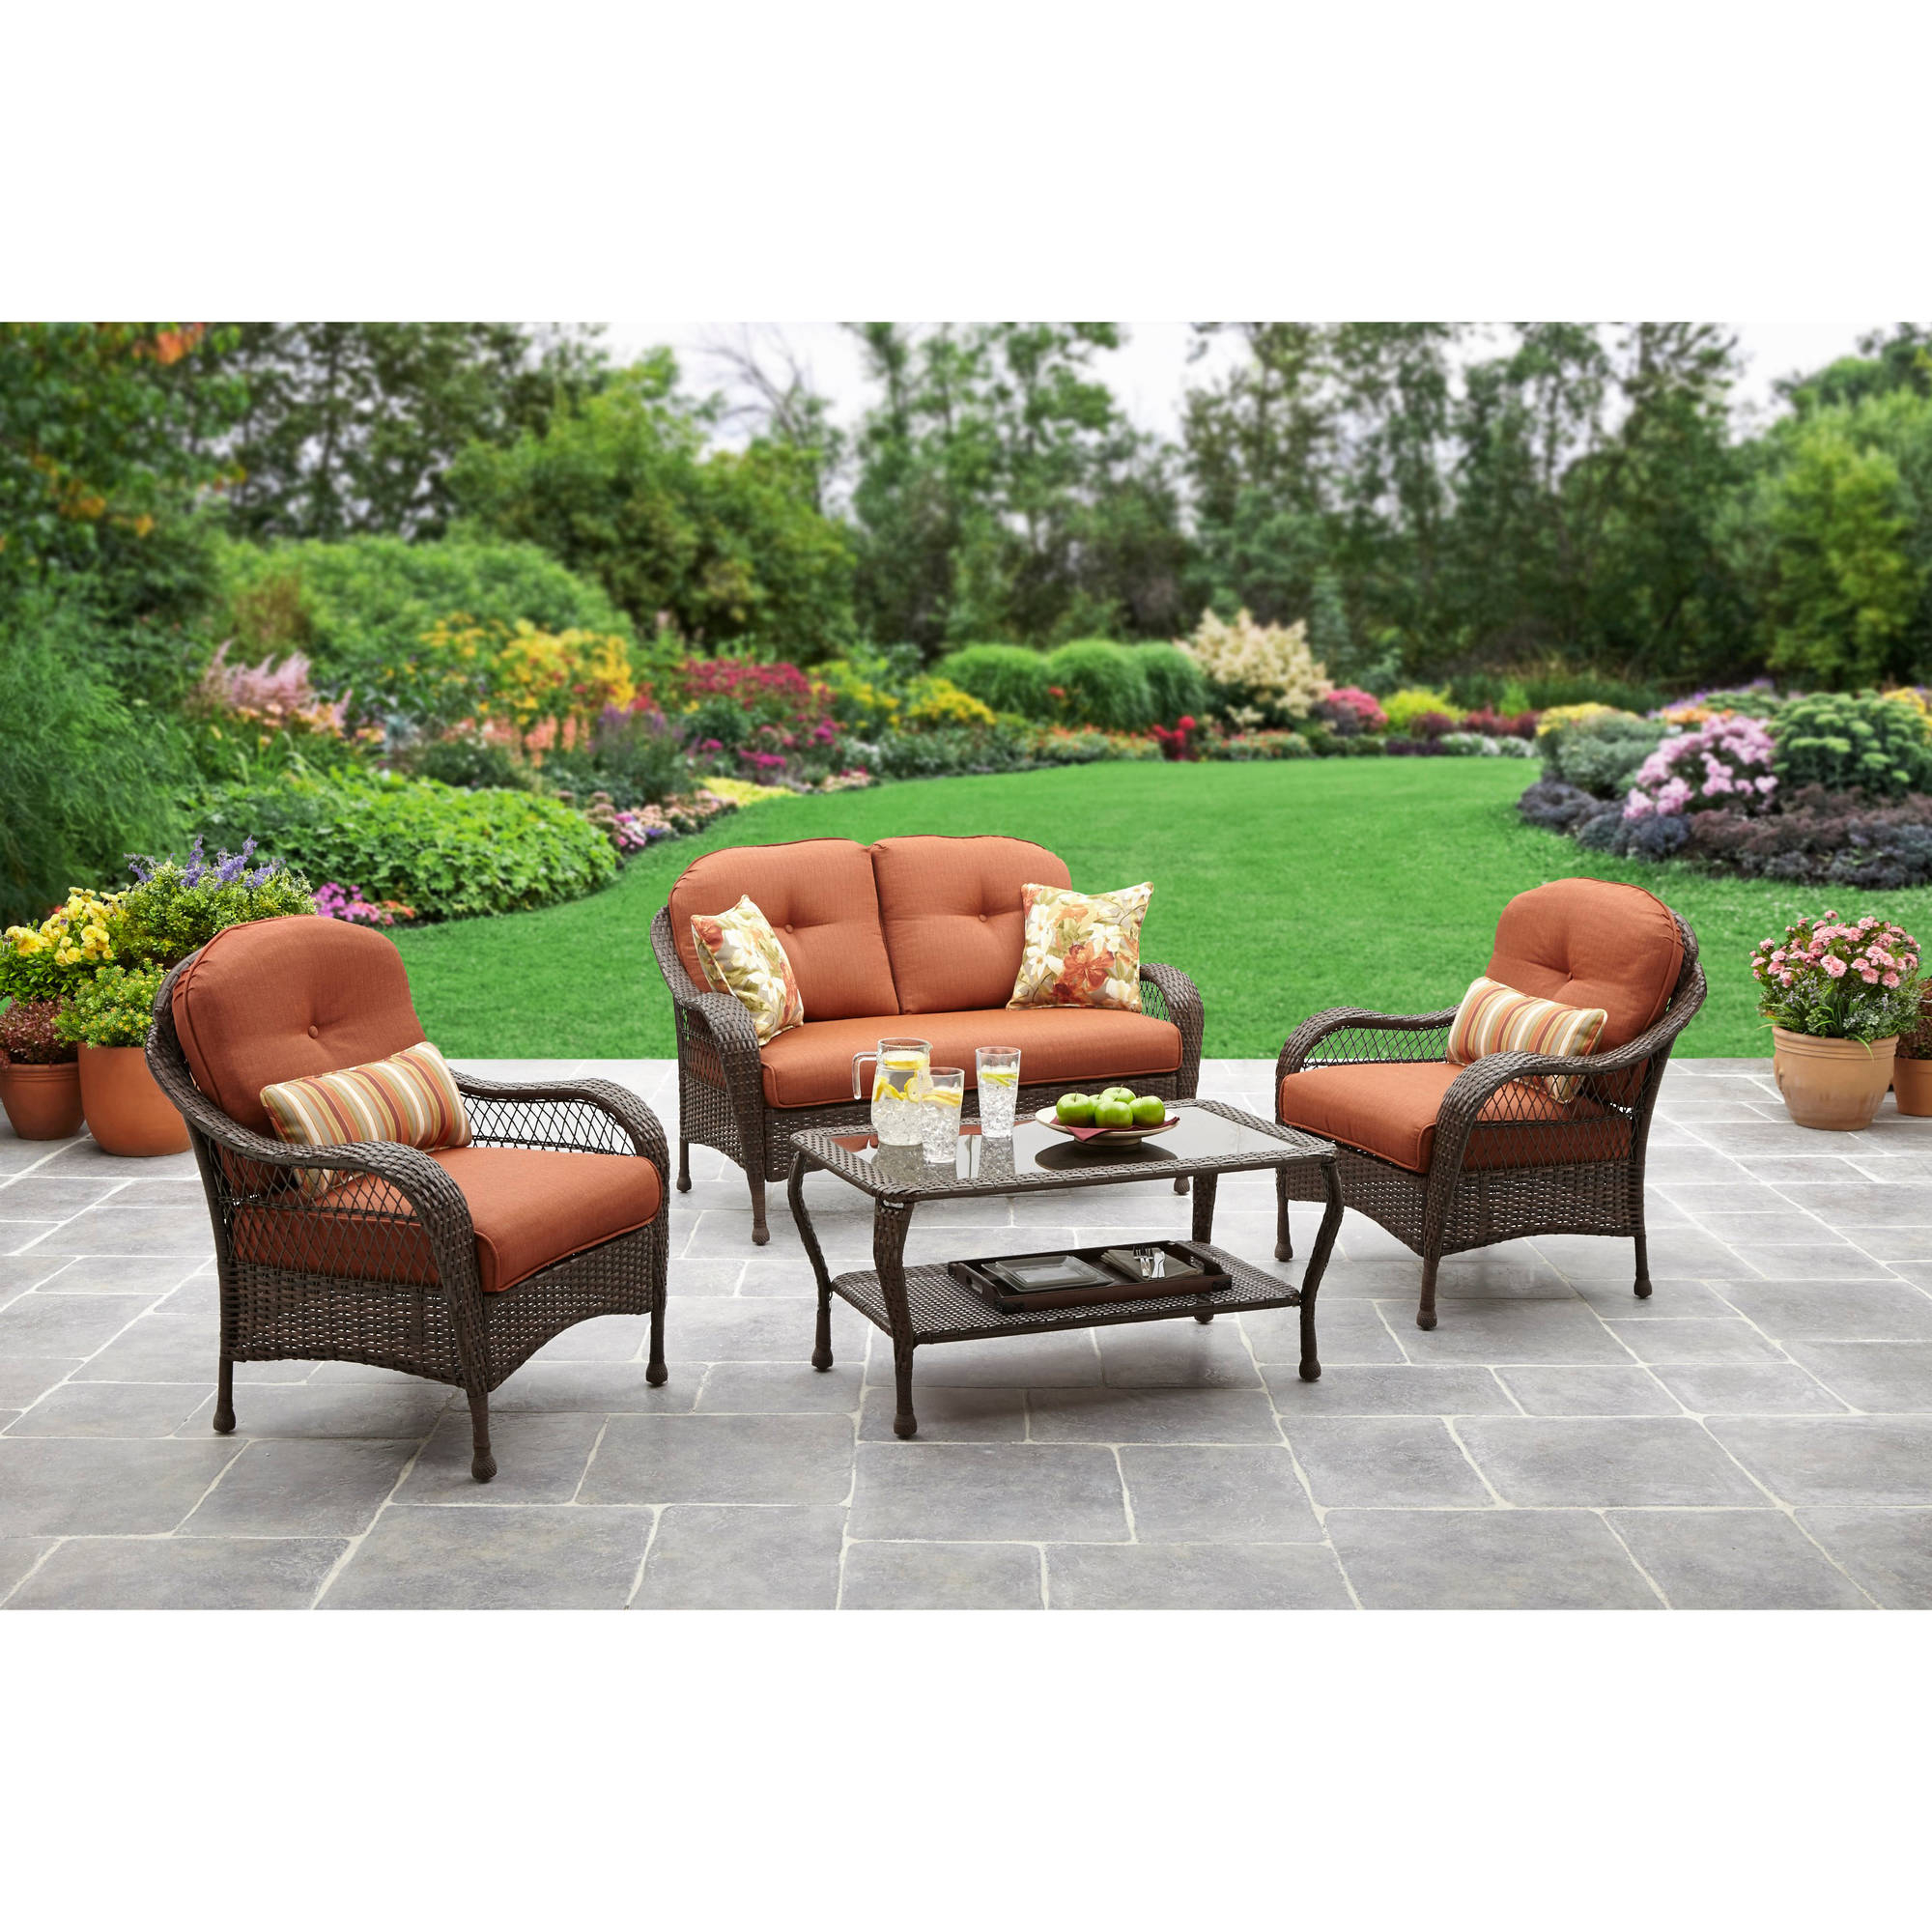 Impressive On Wilson And Fisher Patio Furniture 4 Piece Within Dimensions 2000 X